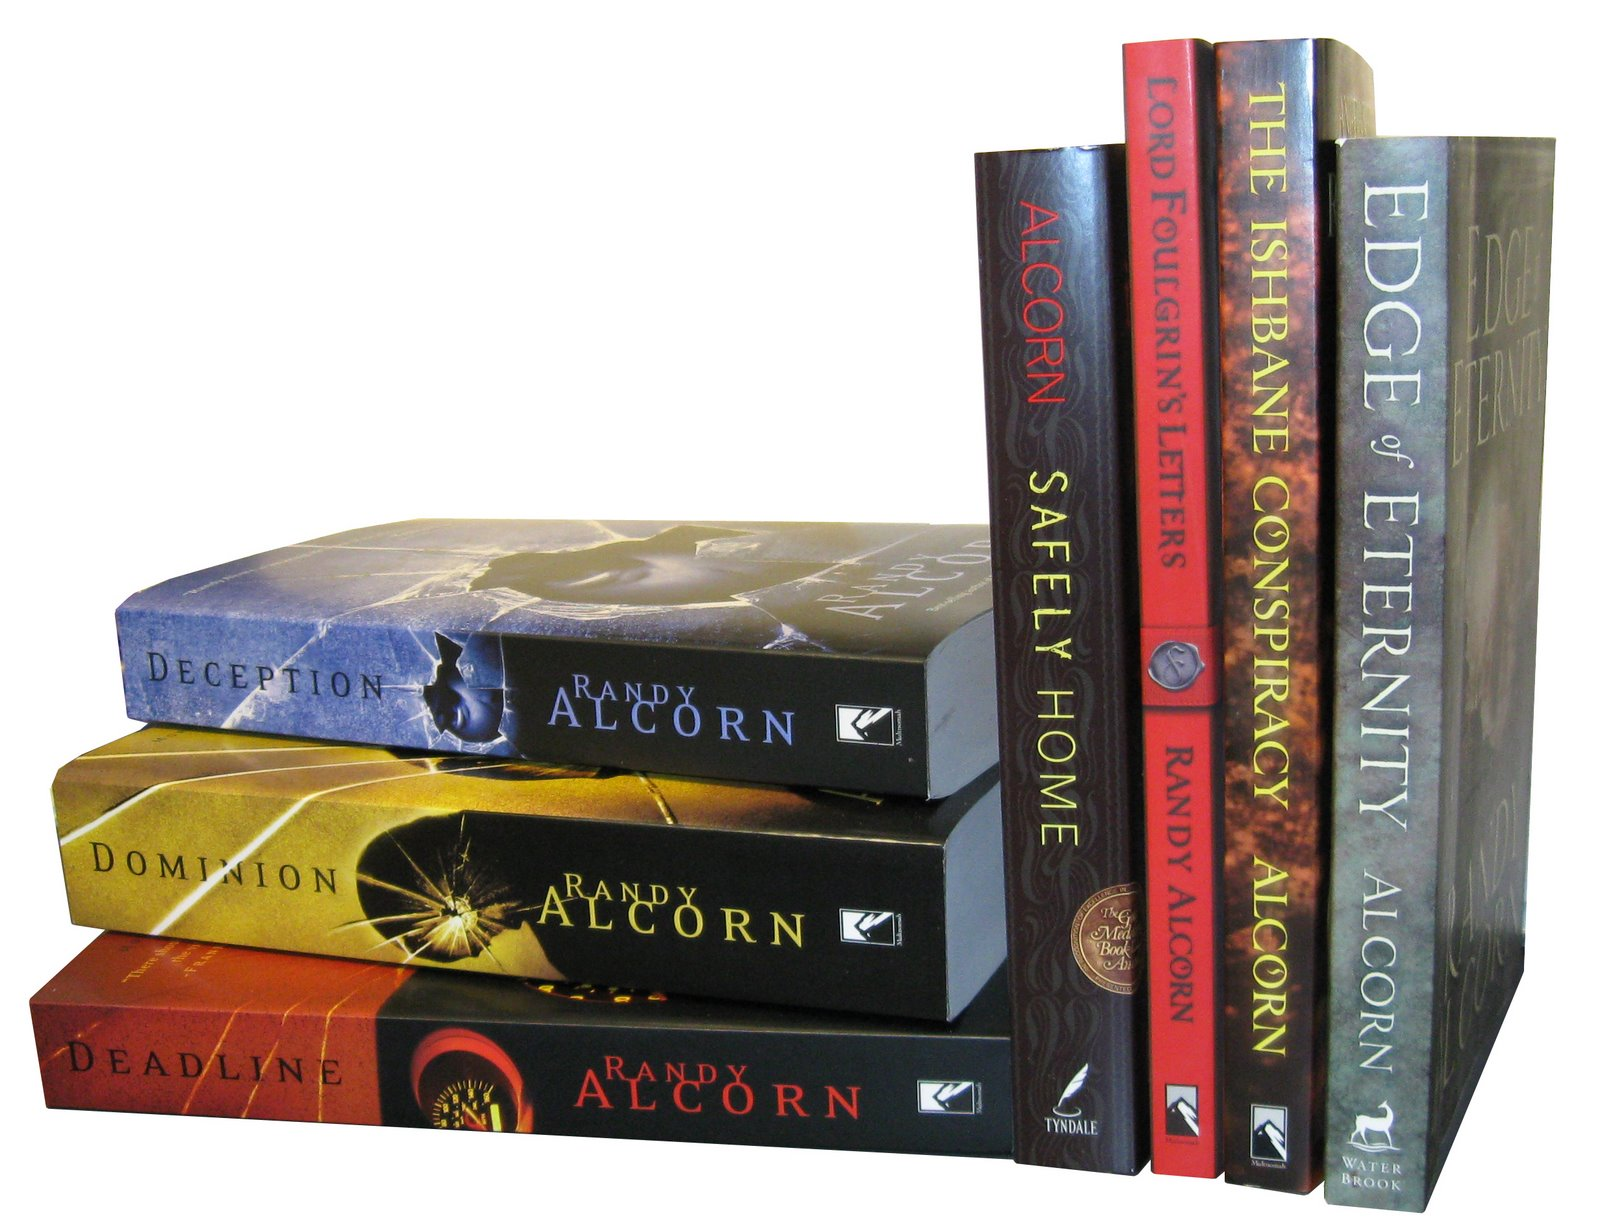 Randy Alcorn's fiction books